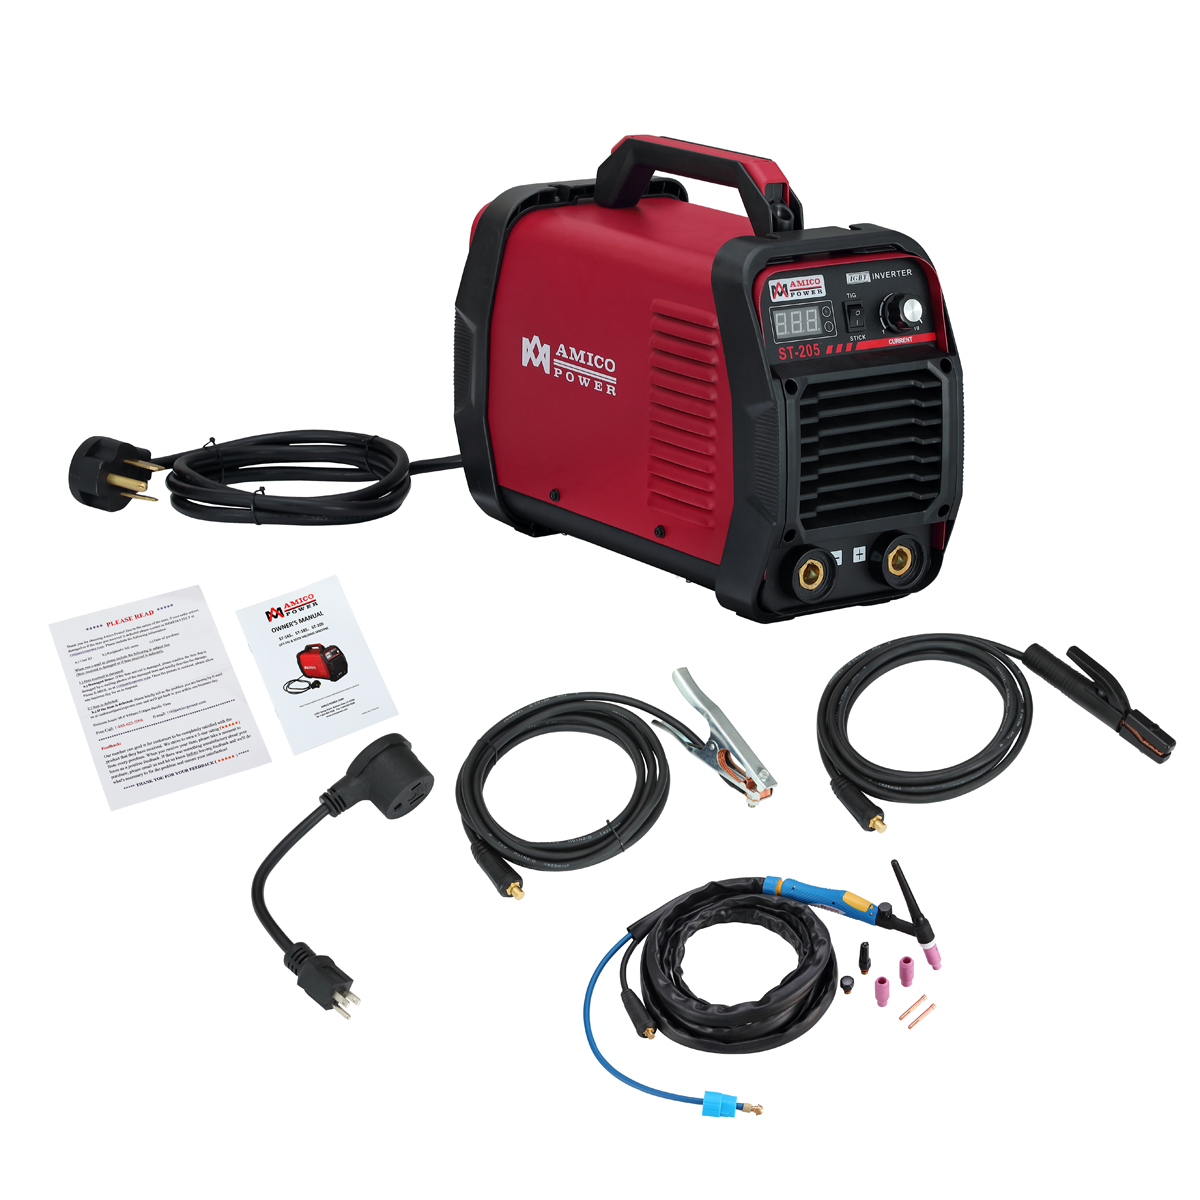 Click here to buy Amico ST-205 205 Amp Lift-TIG Stick Arc Welder 115 & 230V Dual Voltage Welding by Amico Power Corp..